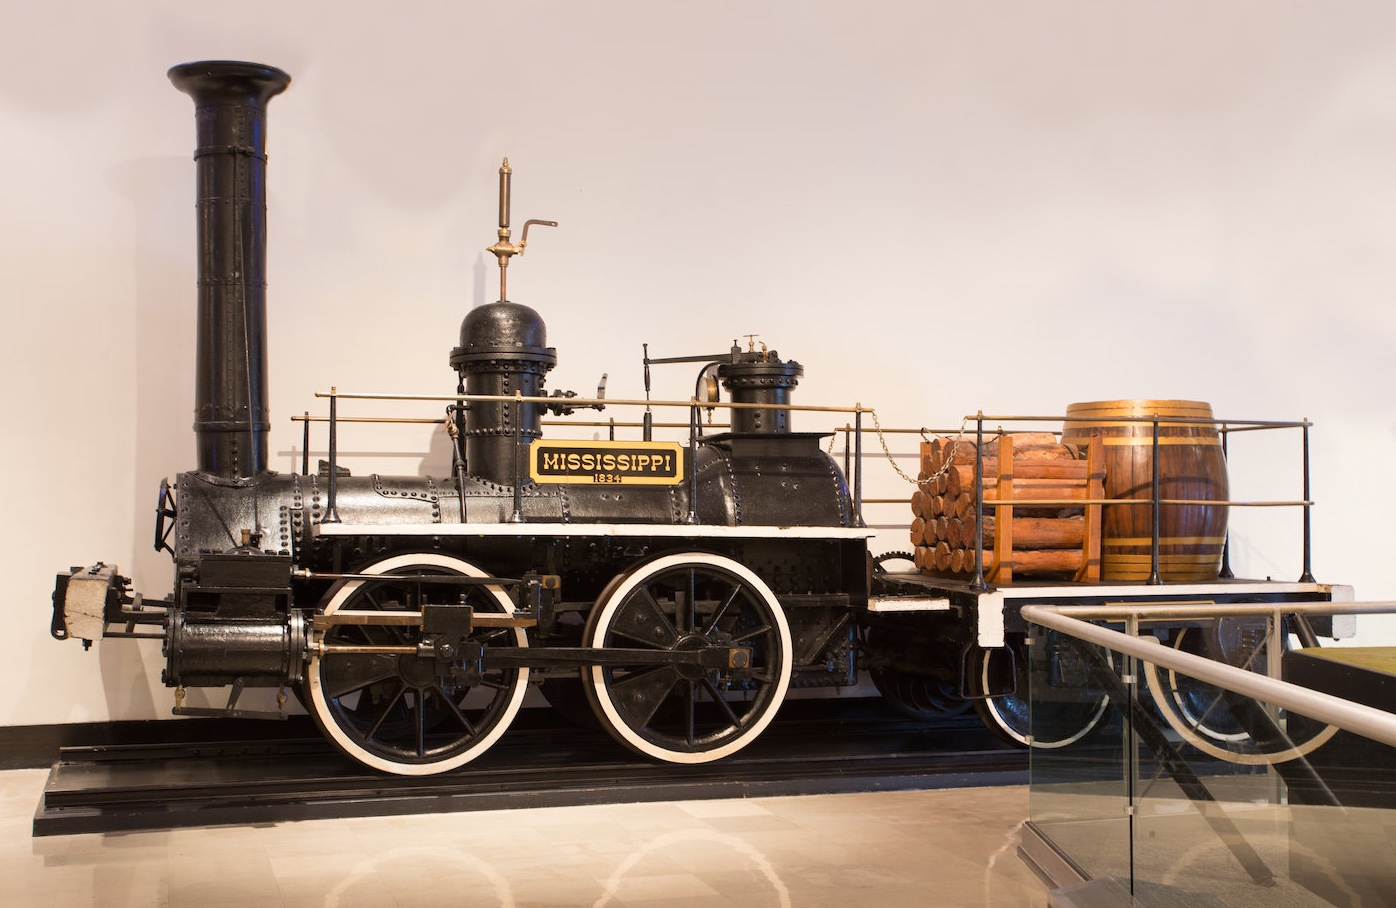 The Mississippi on display at Museum of Science and Industry in Chicago | Bonhams photo